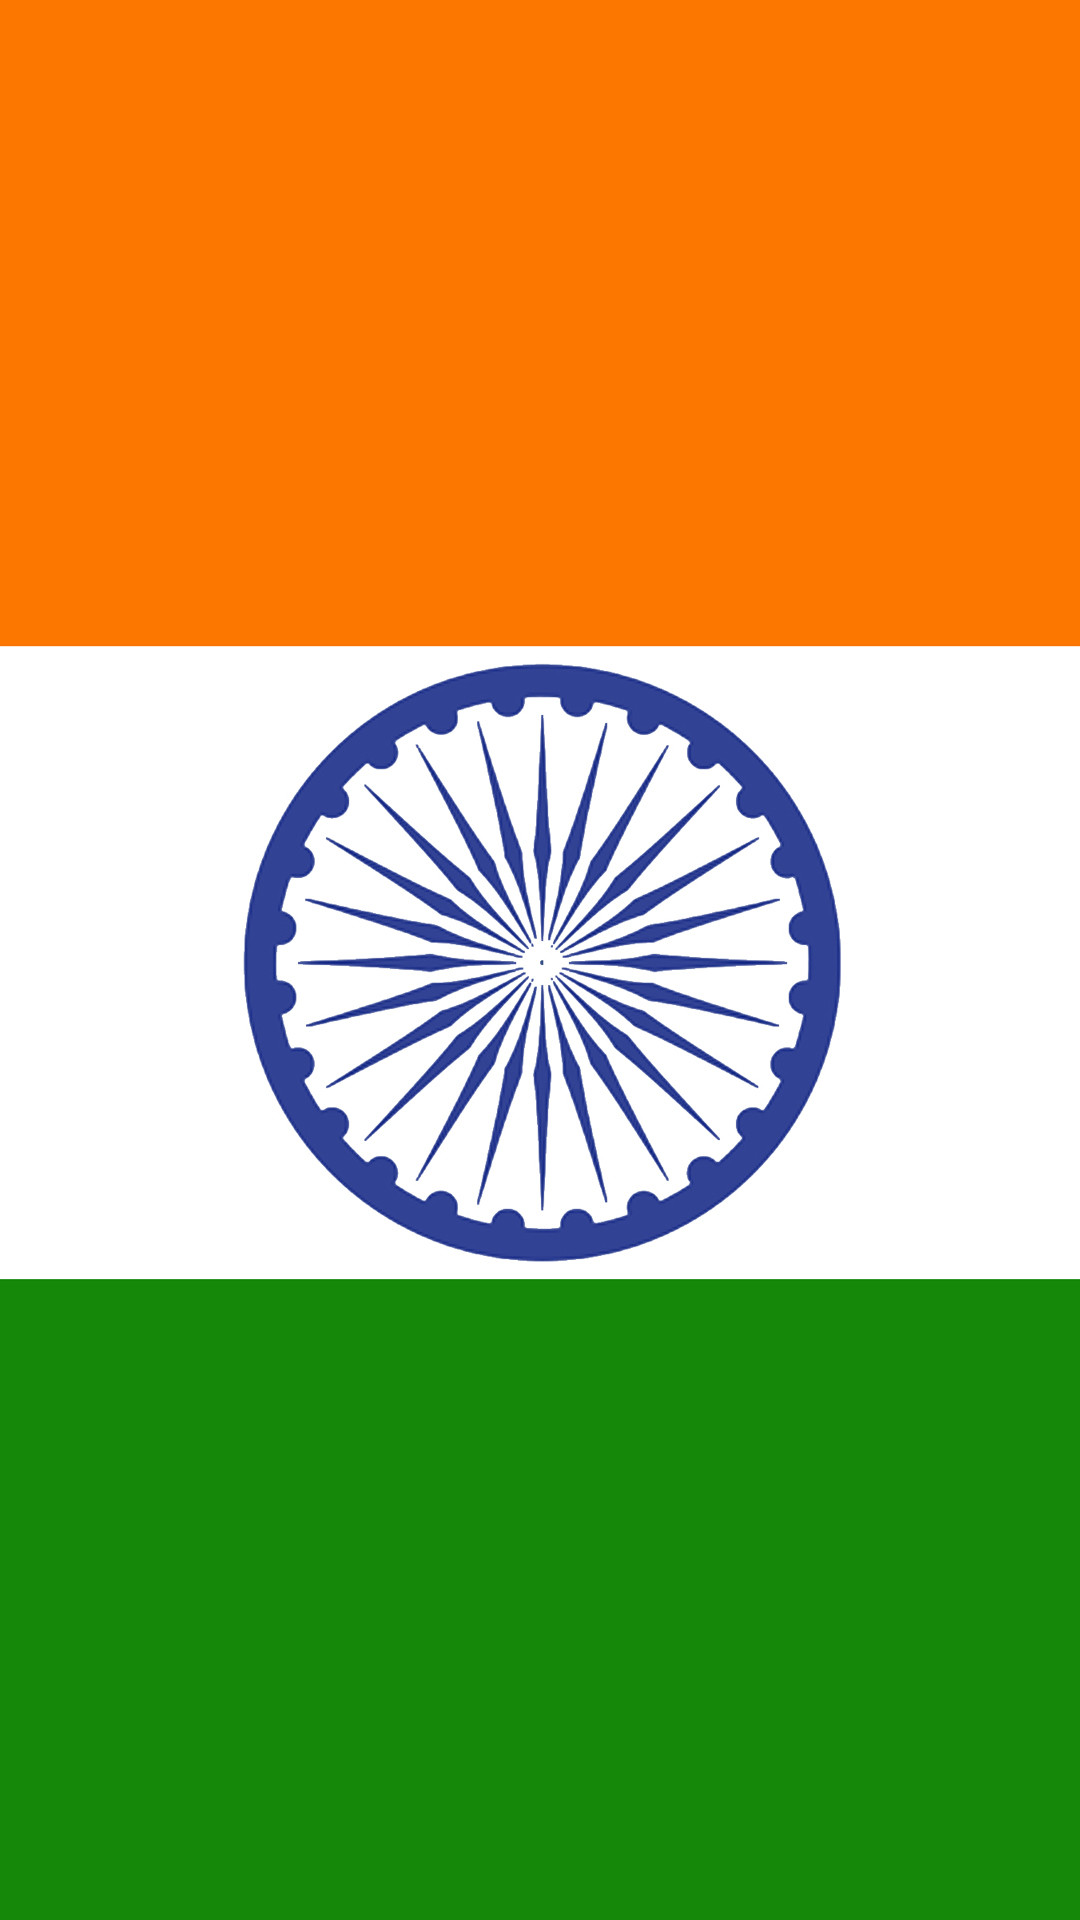 Indian flag mobile 3d wallpaper 2018 72 images for India wallpaper 3d